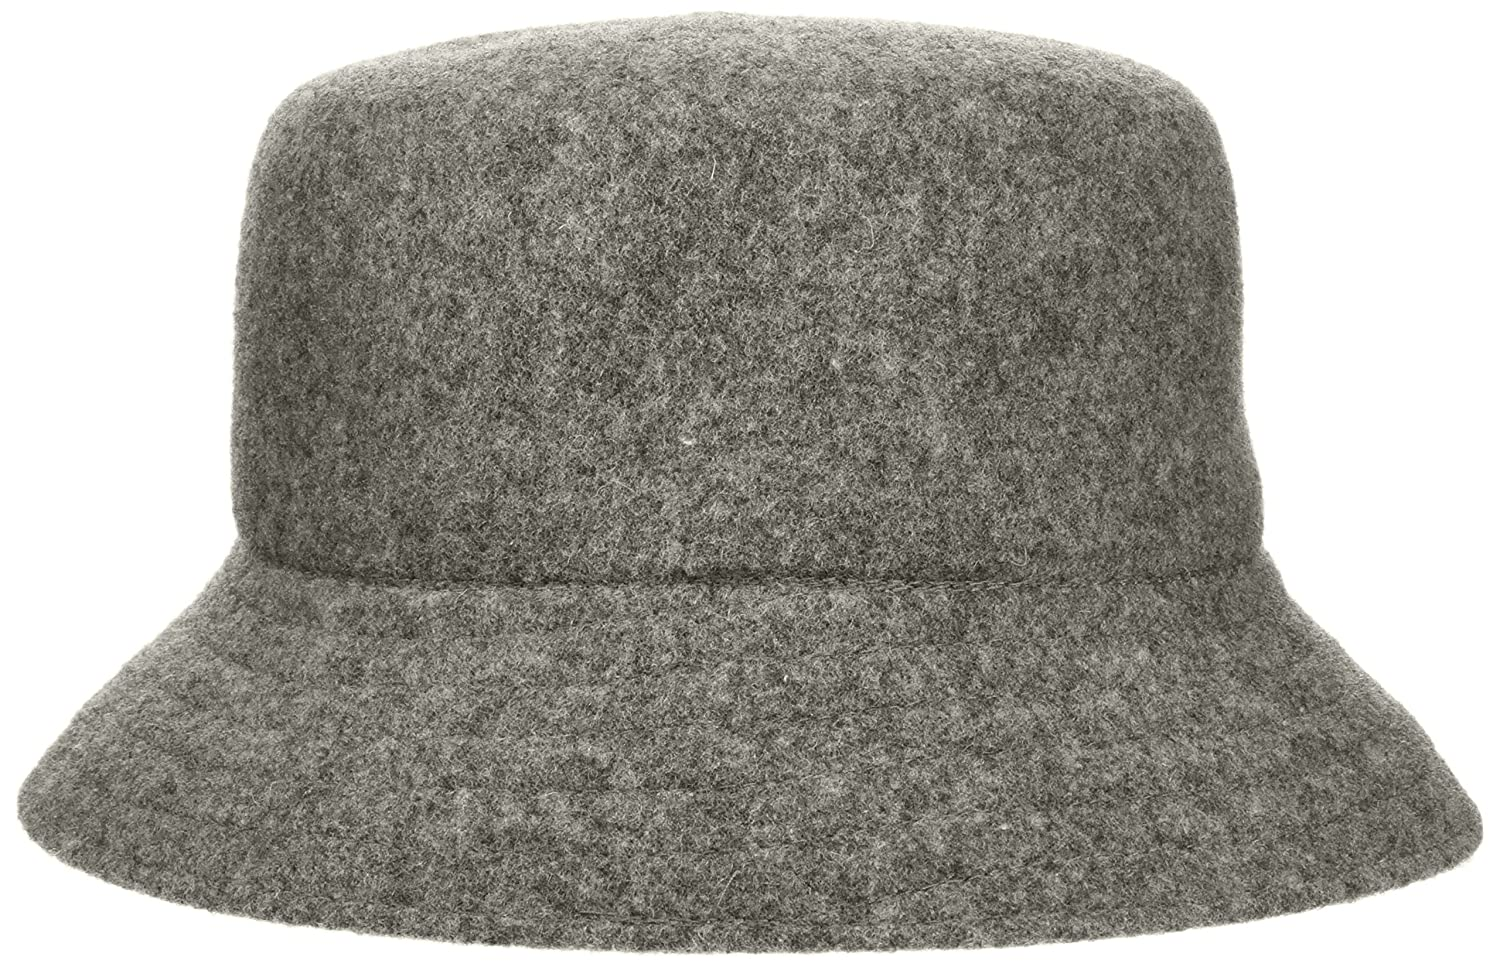 4a52051e8f4 Kangol Men s Wool Lahinch Bucket Hat at Amazon Men s Clothing store